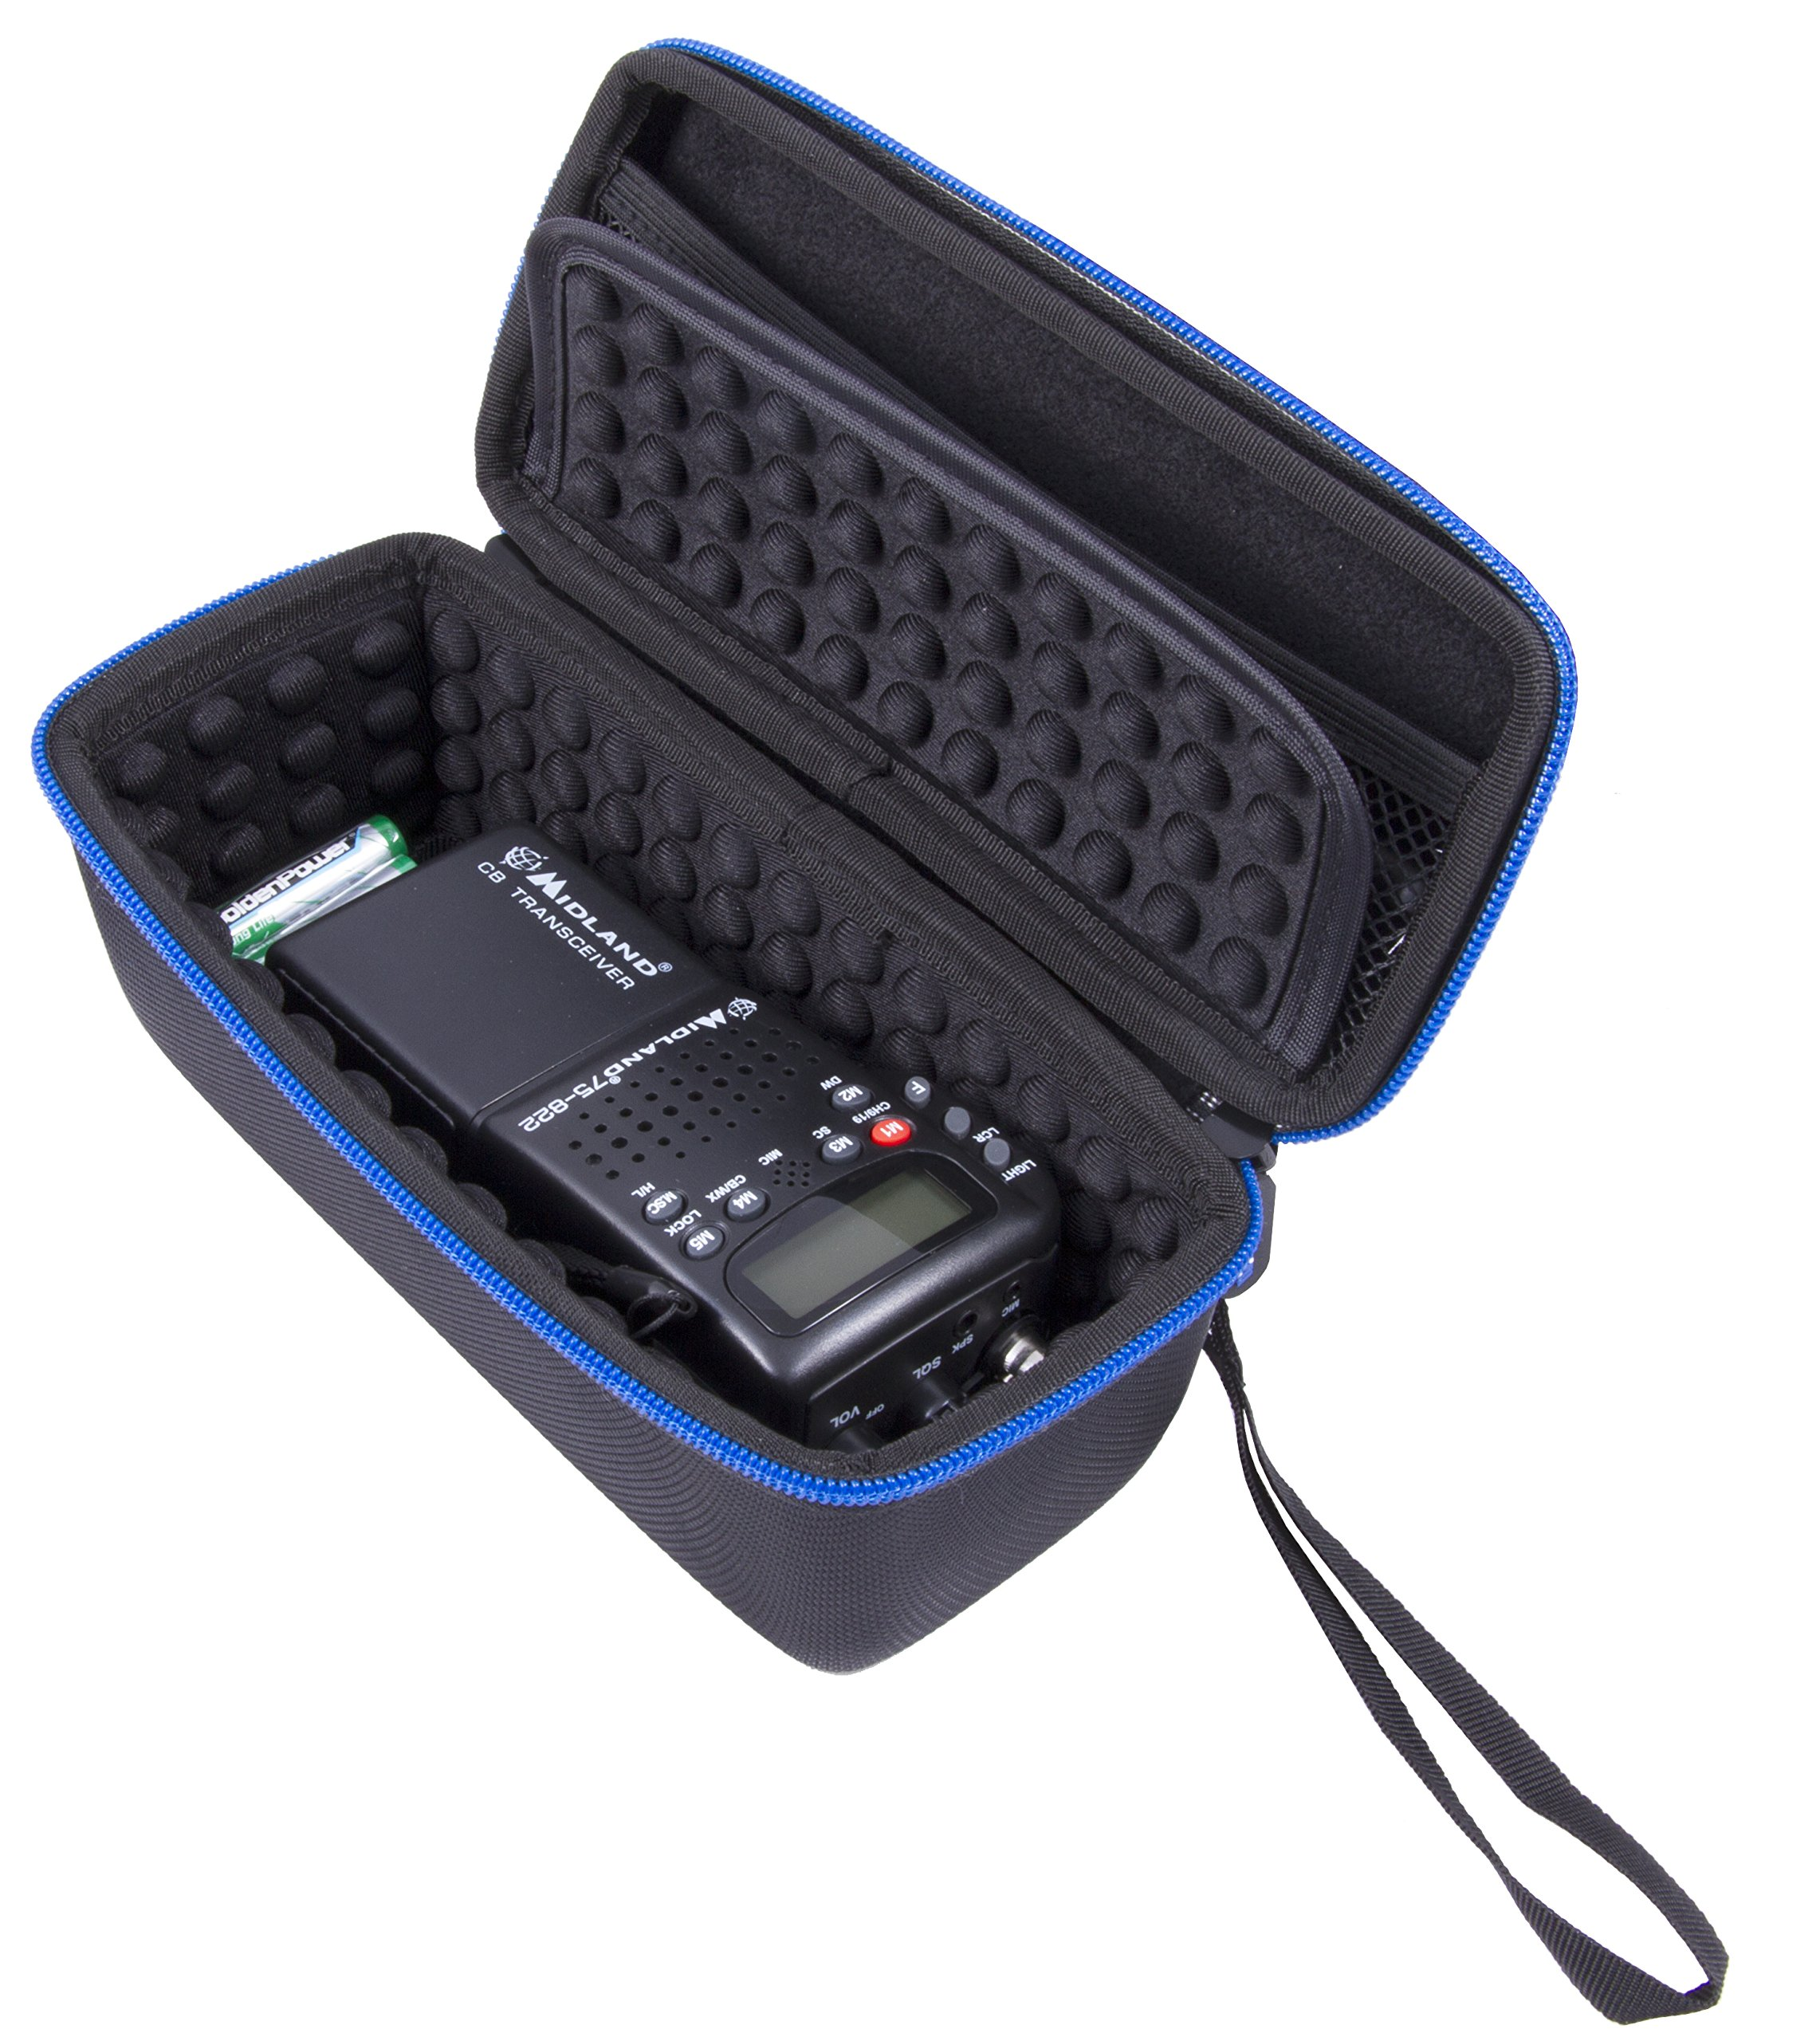 CASEMATIX Radio Case fits One Midland or Uniden CB Radio – Holds Midland 75-822, Uniden BC75XLT, Midland 75-785 and Uniden BCD436HP 40 Channel CB-Way Radio